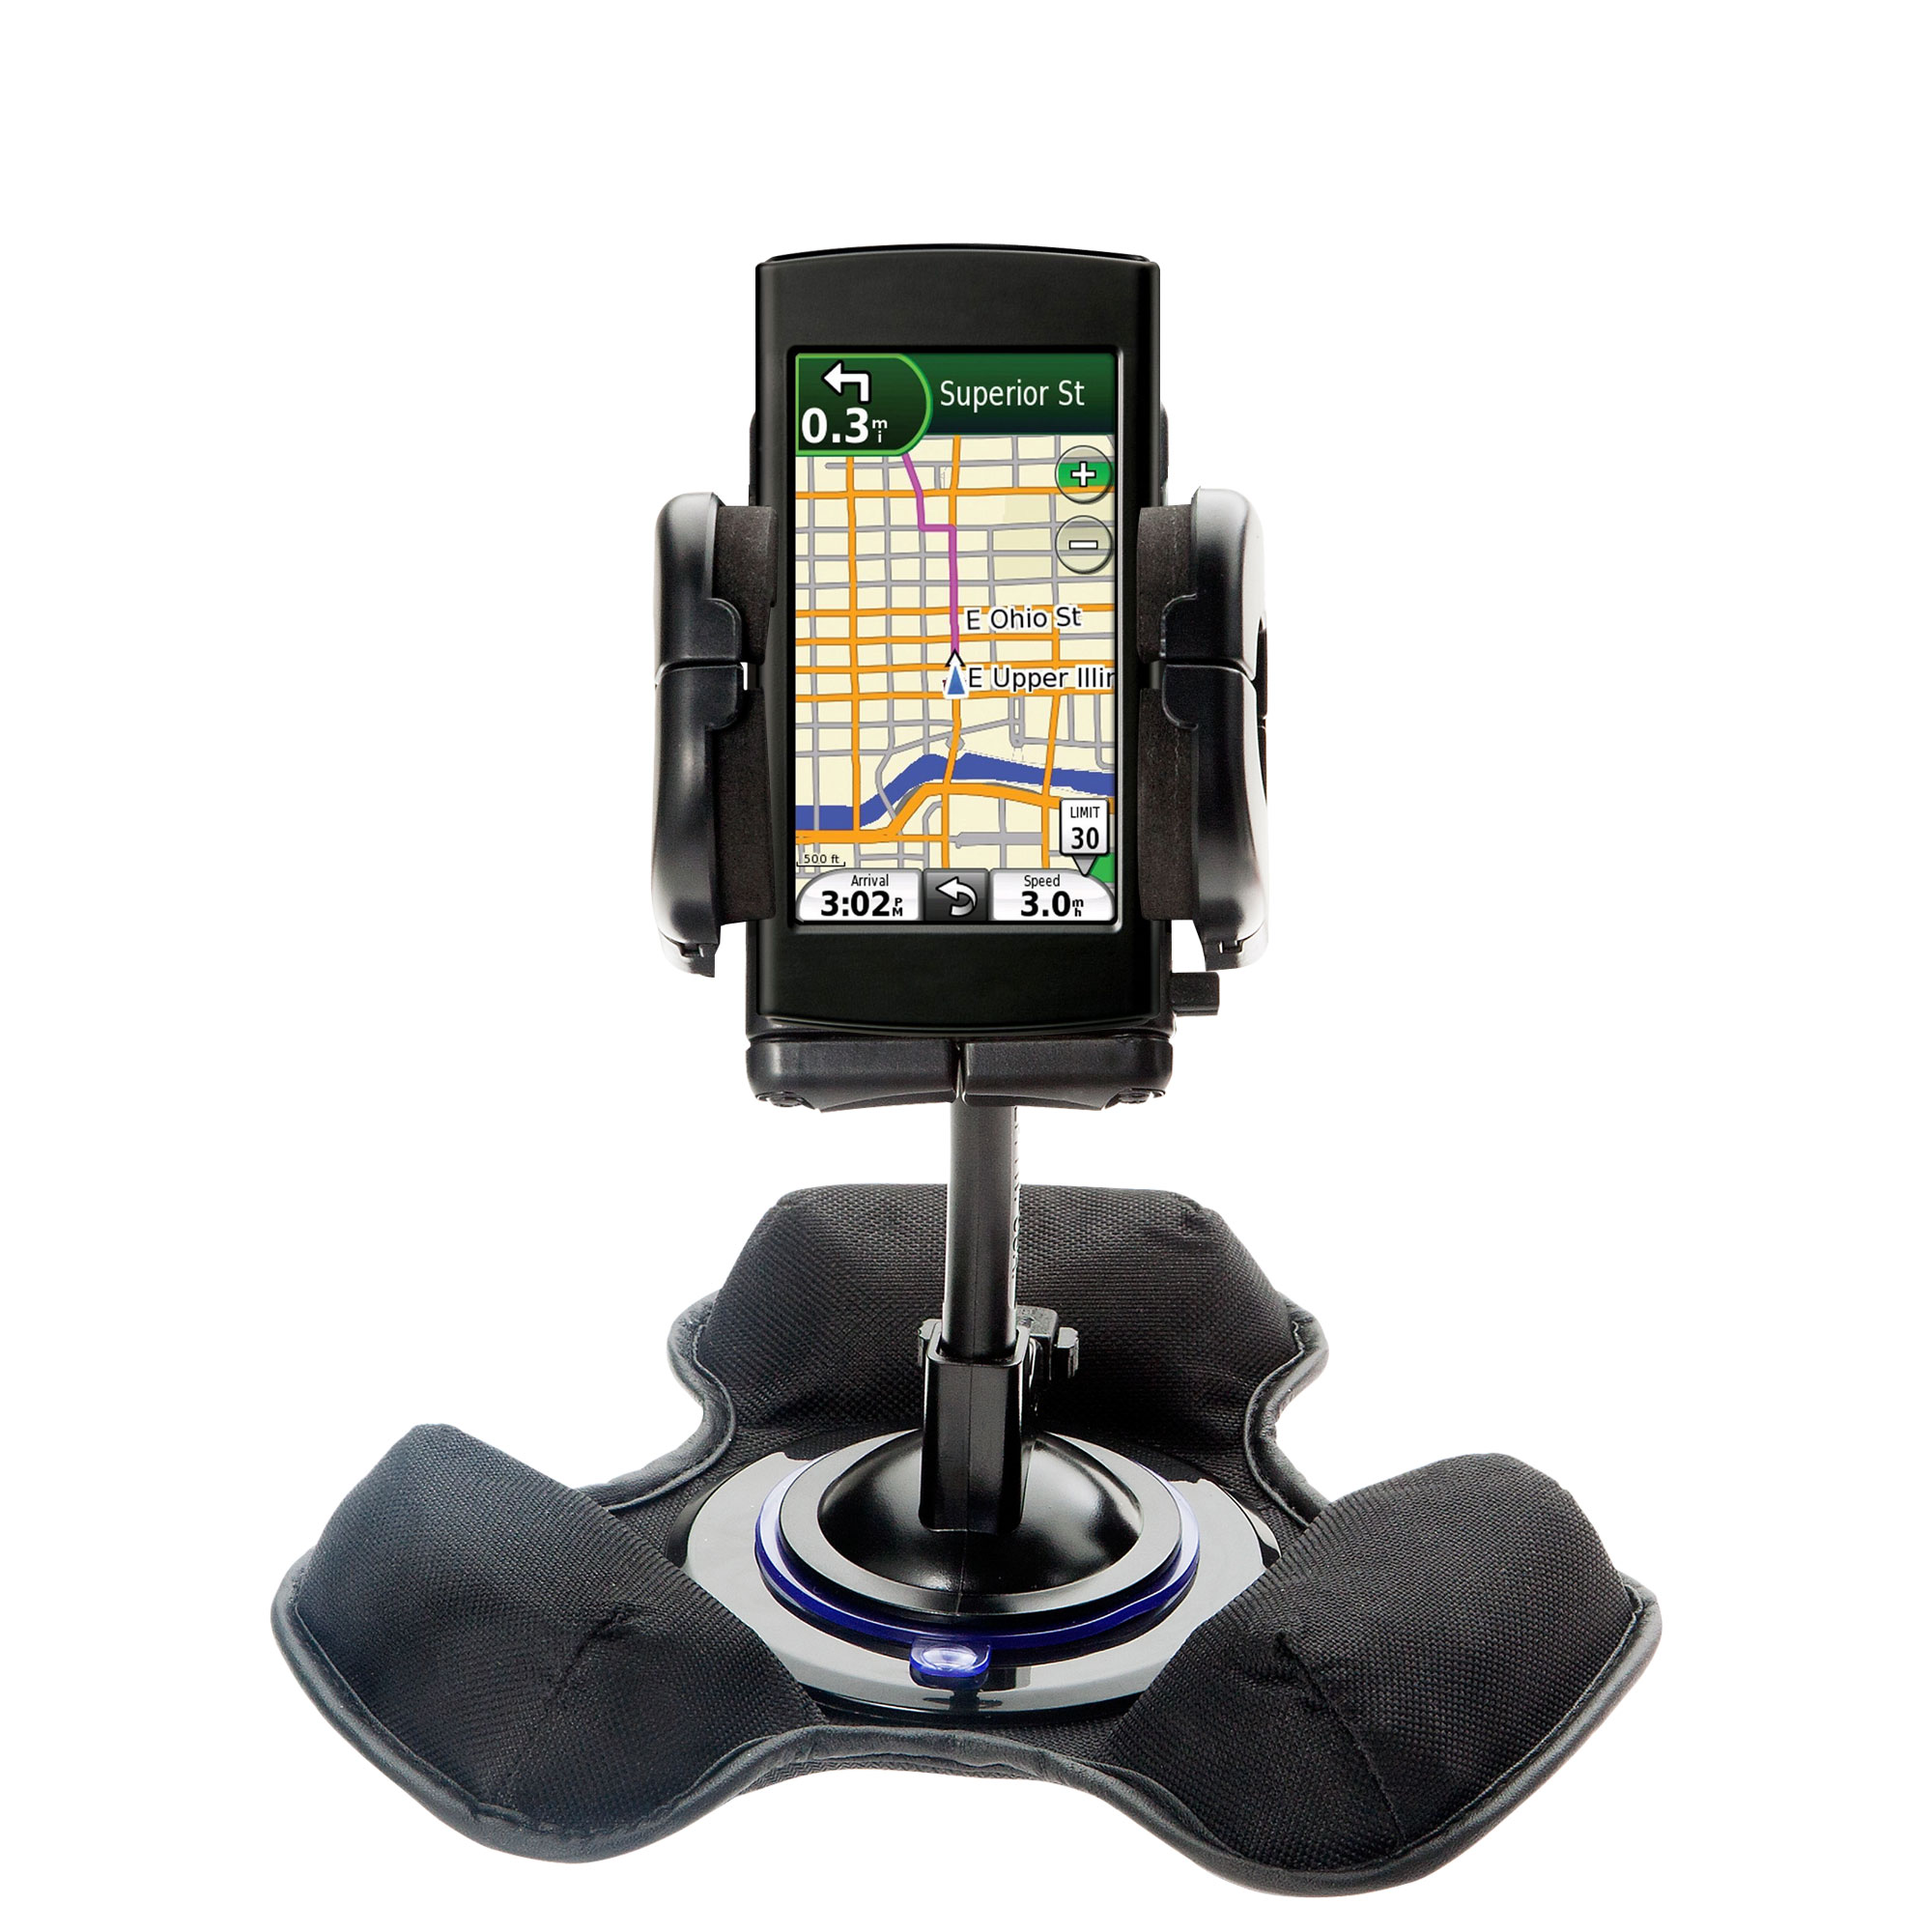 Dash and Windshield Holder compatible with the Garmin 295W